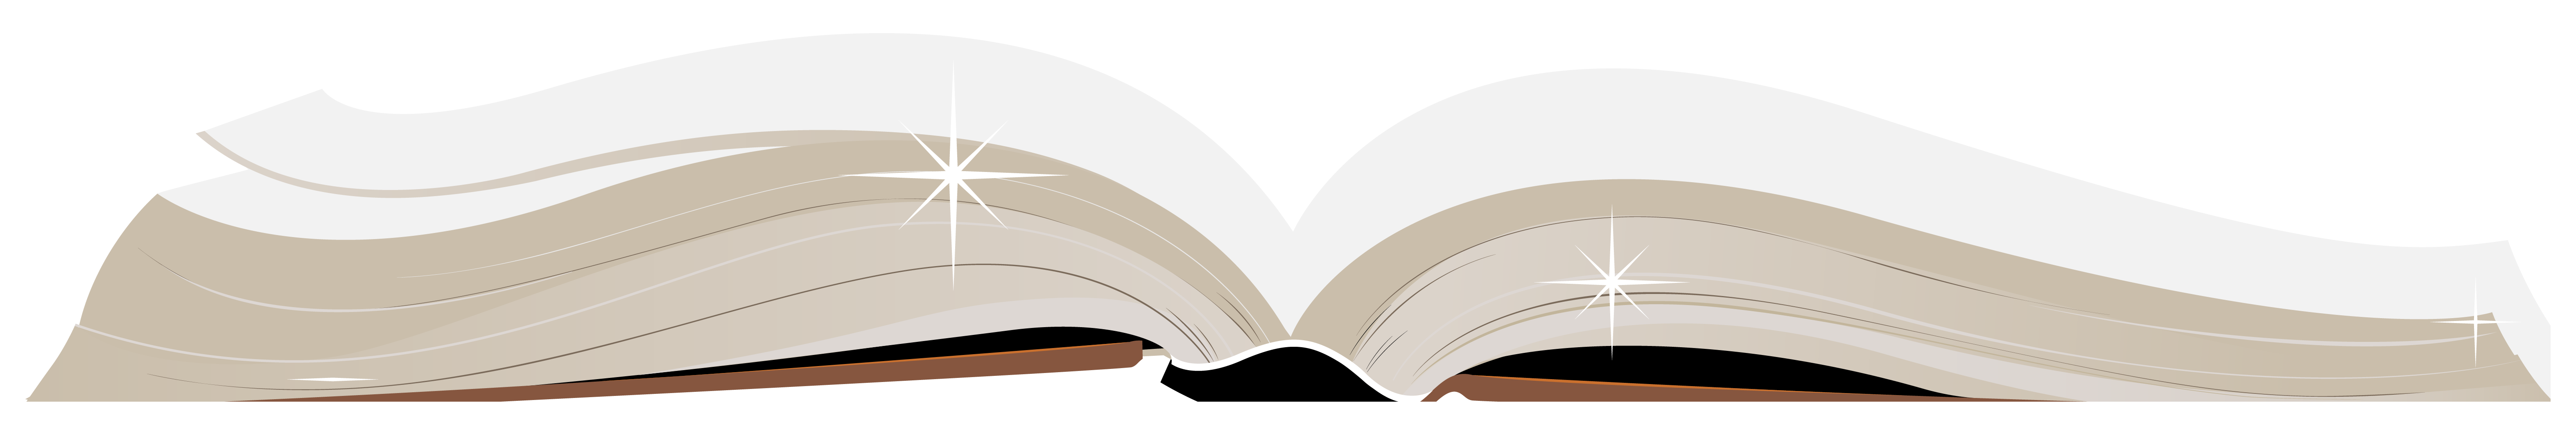 Open books png. Book clipart